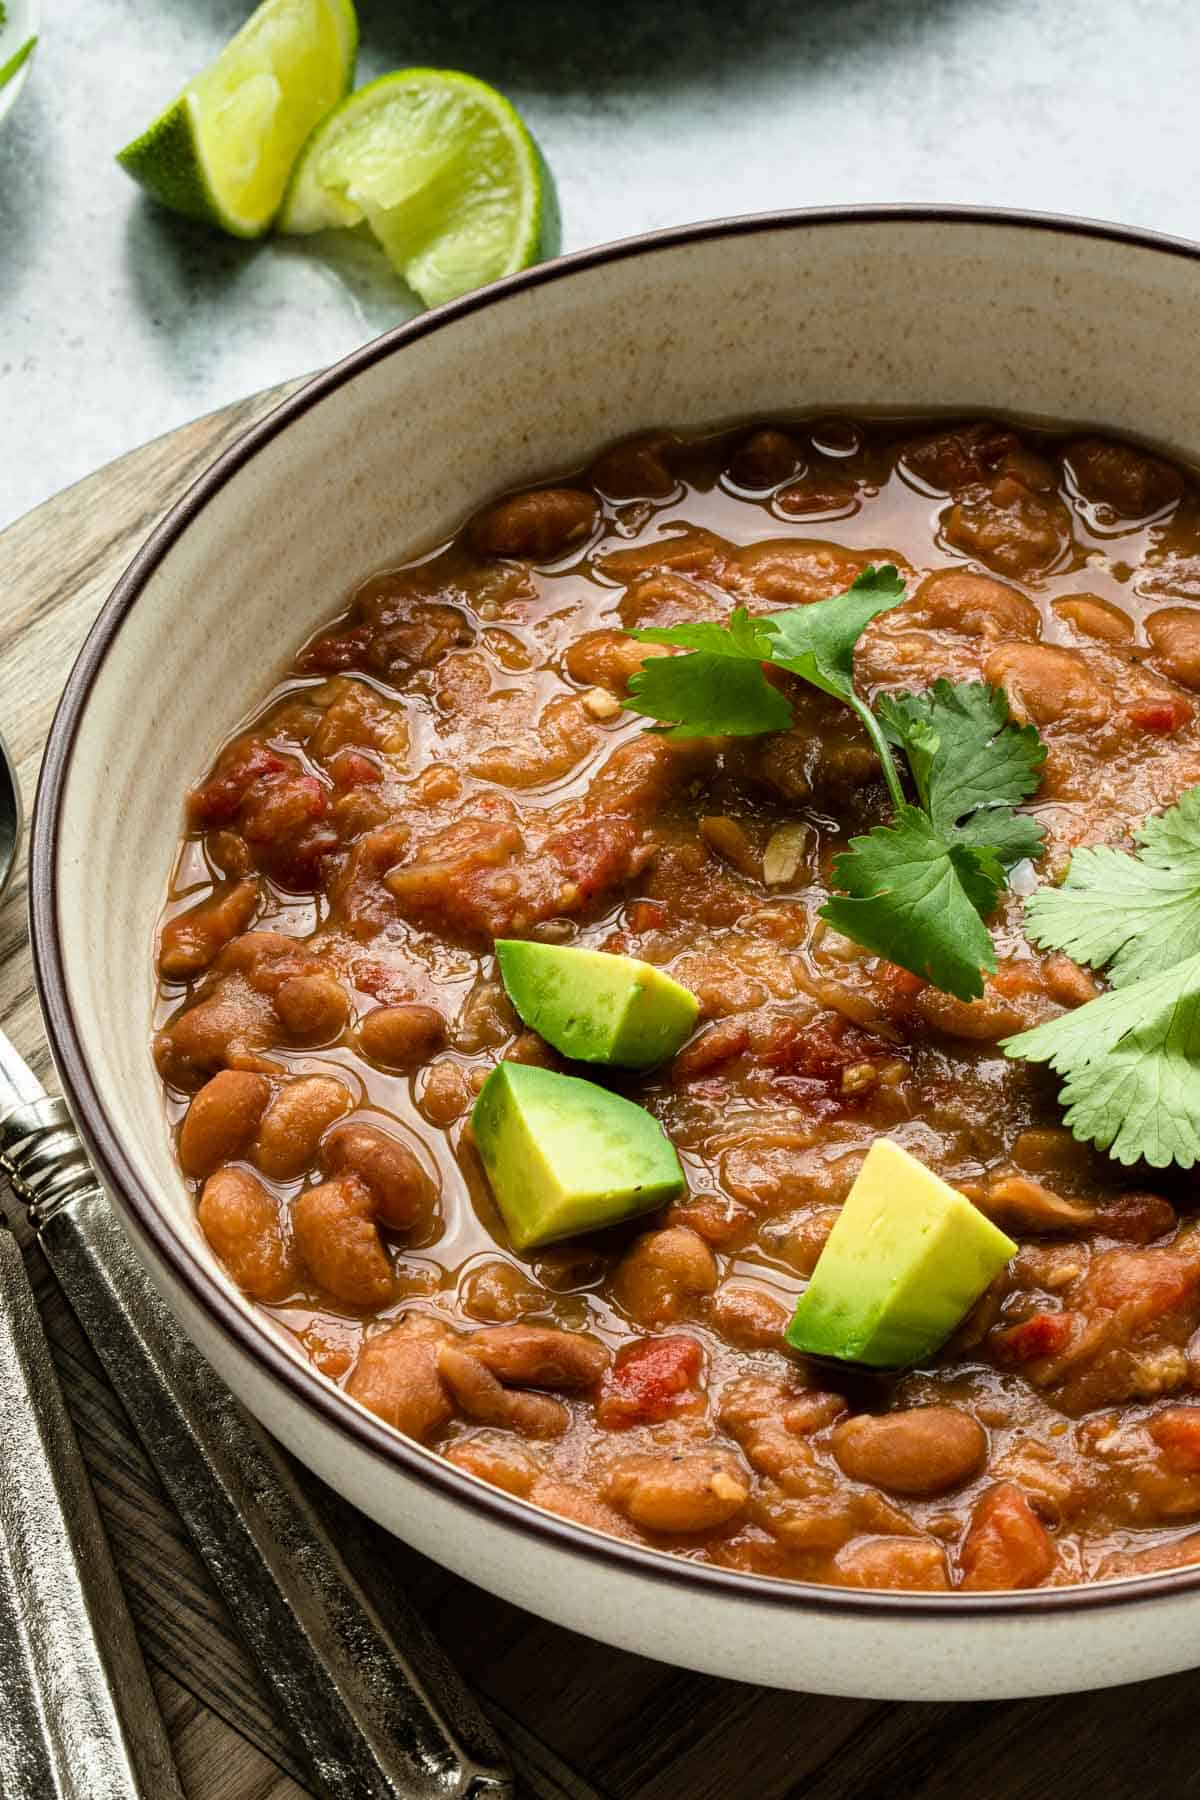 close up view of cooked pintos in a bowl with cilantro leaves and diced avocado